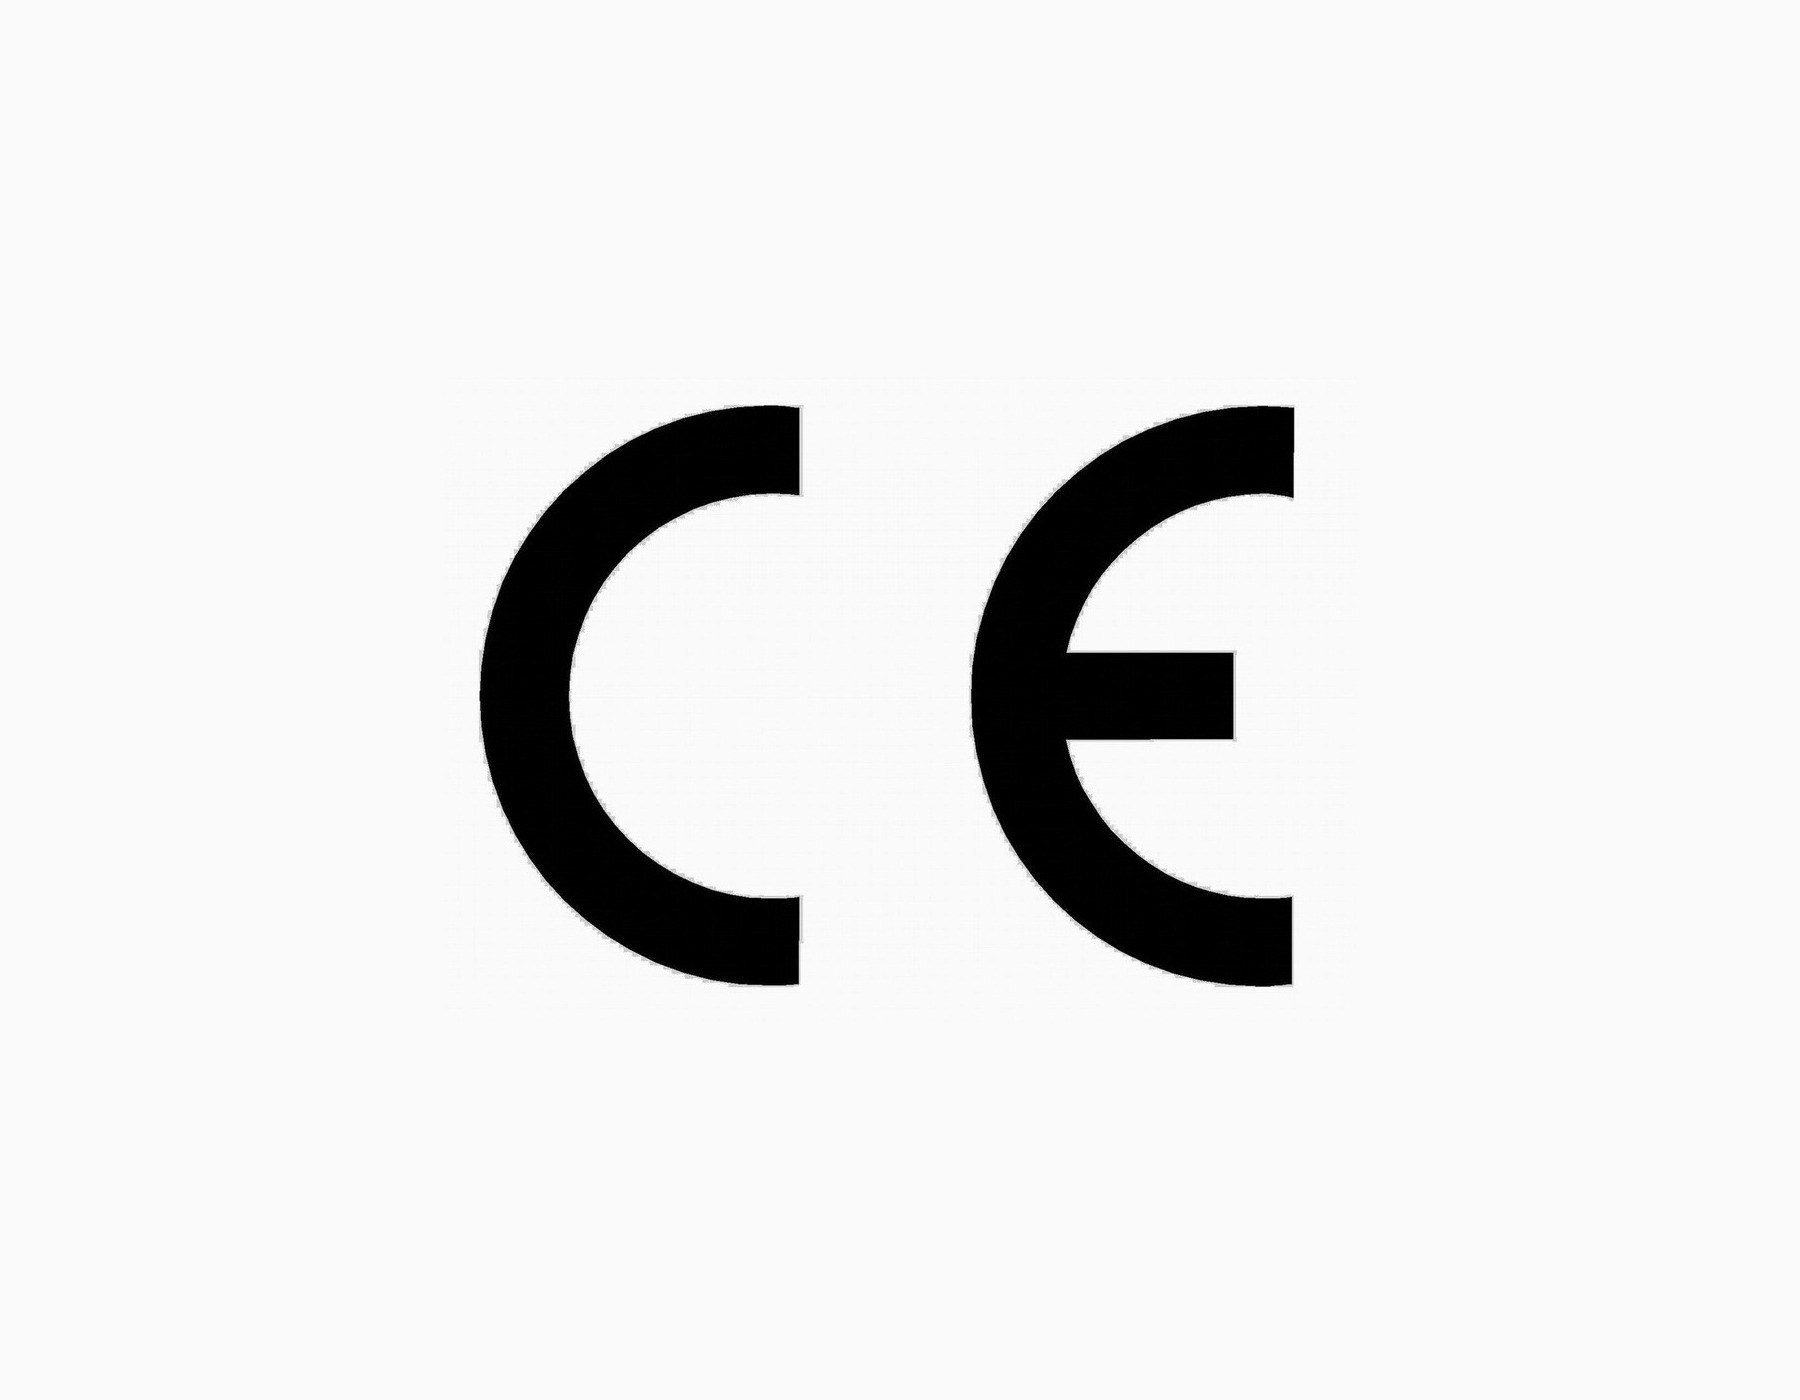 CE mark (http://image.made-in-china.com/2f0j00teuQErHsuMgV/CE-Marking-Certification-Service.jpg)